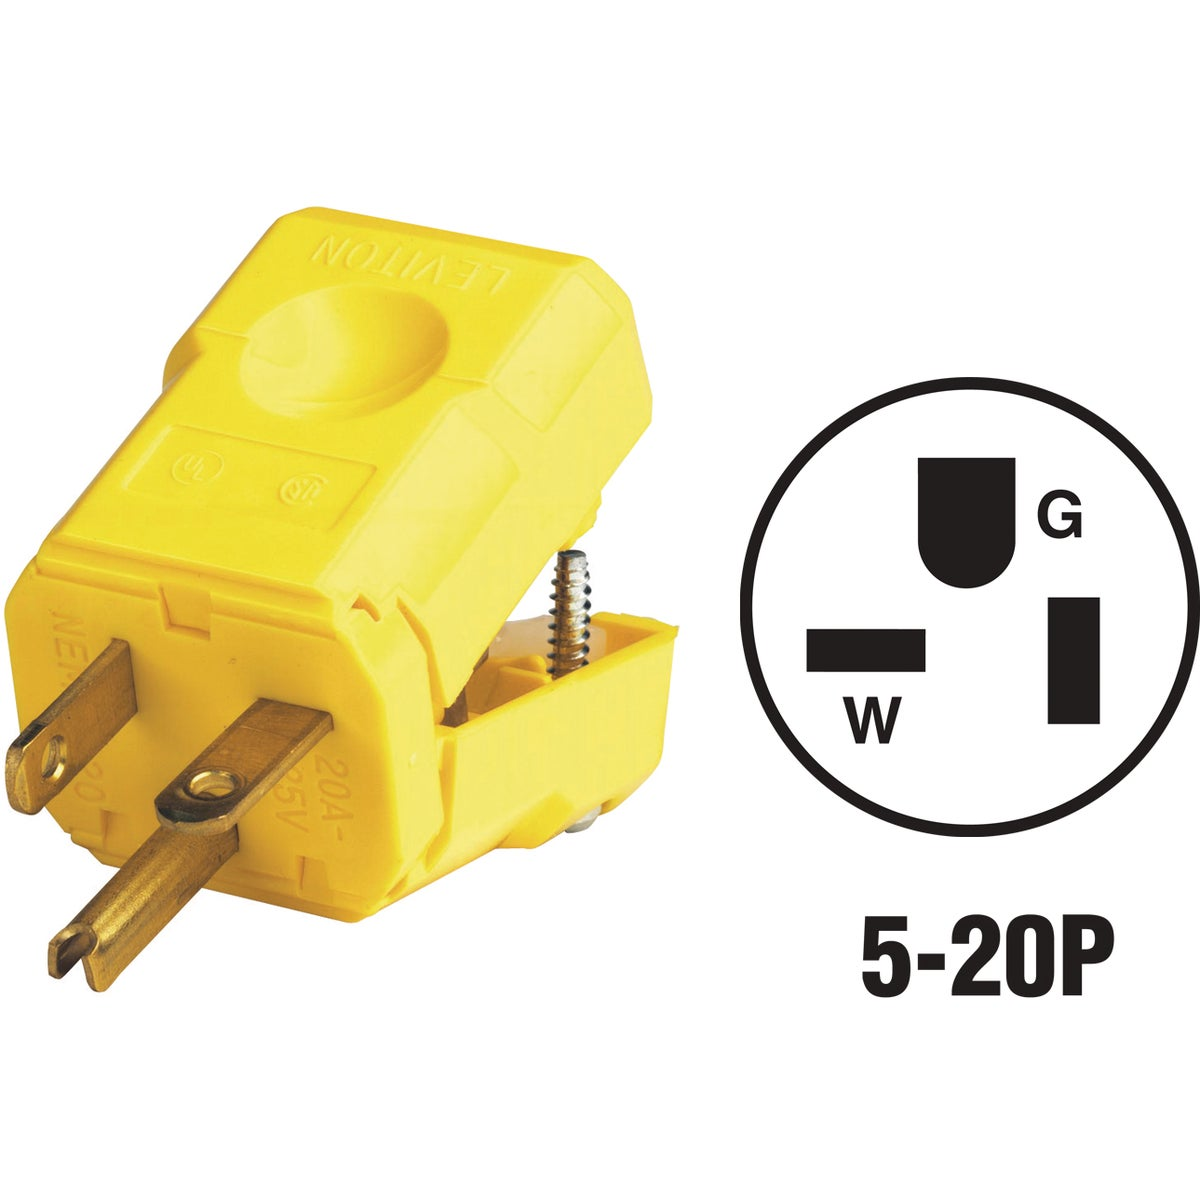 20A NYLON CORD PLUG - 08153560VY by Leviton Mfg Co